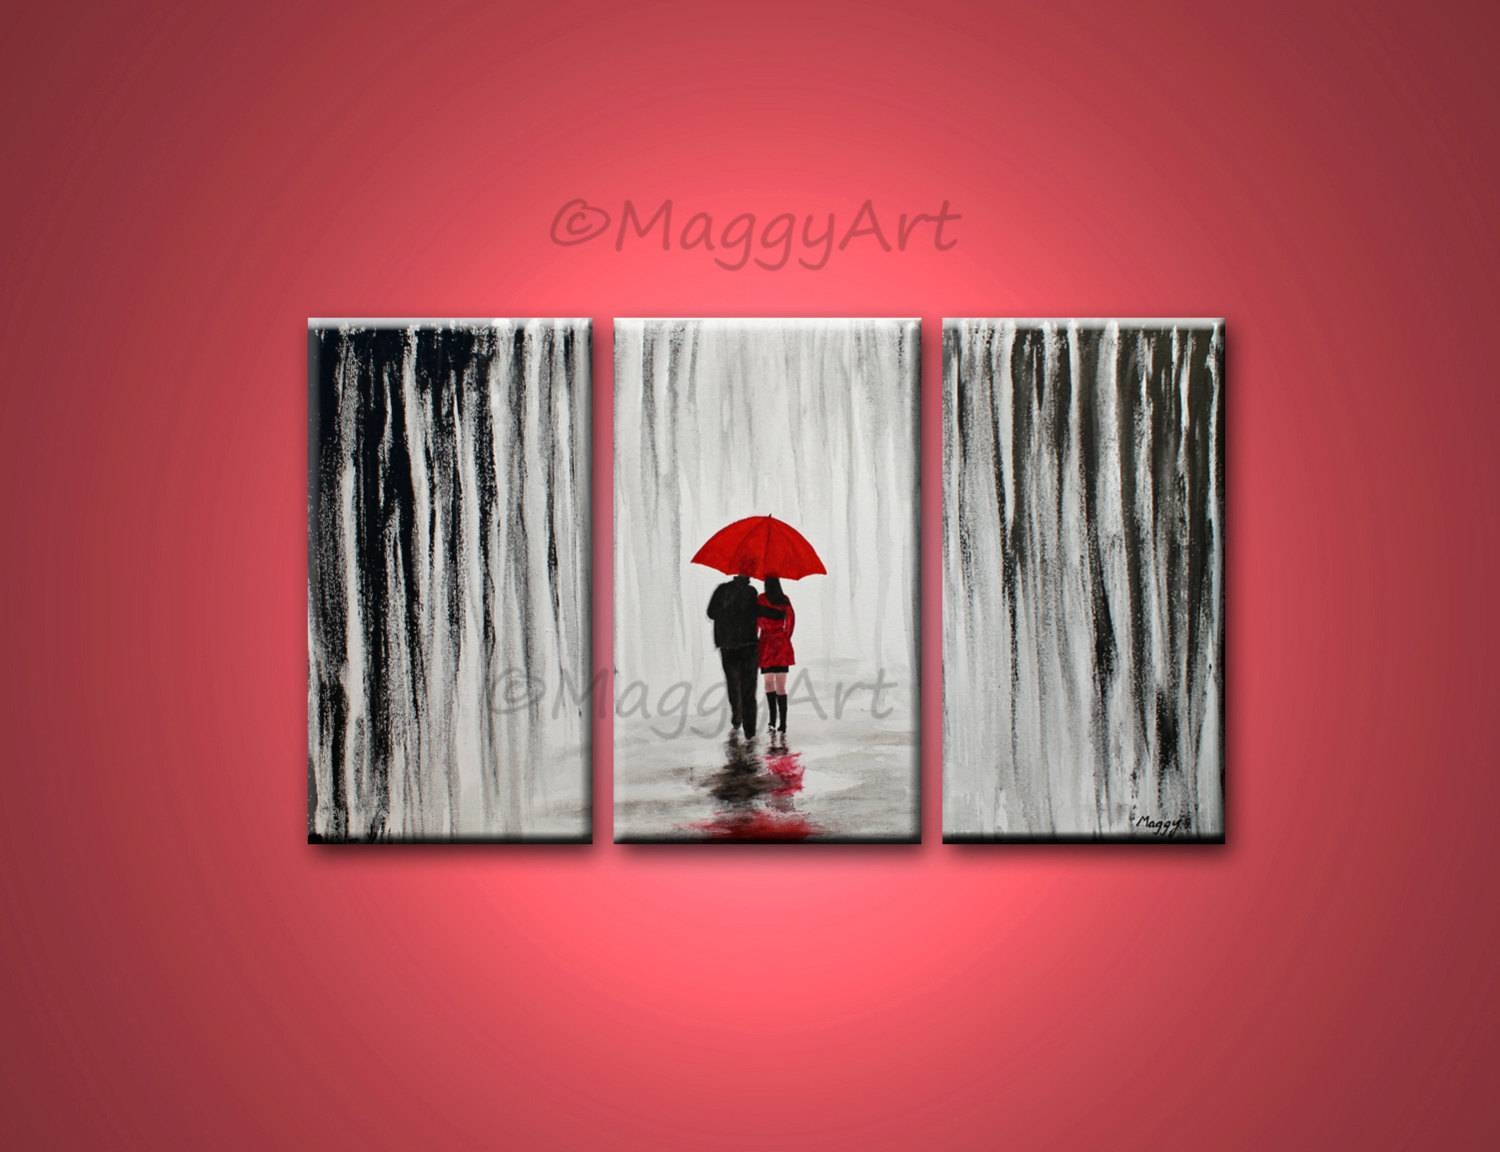 Original Acrylic Painting72x36 Inch Walking In Rain Black Regarding 2018 Black White And Red Wall Art (View 13 of 20)